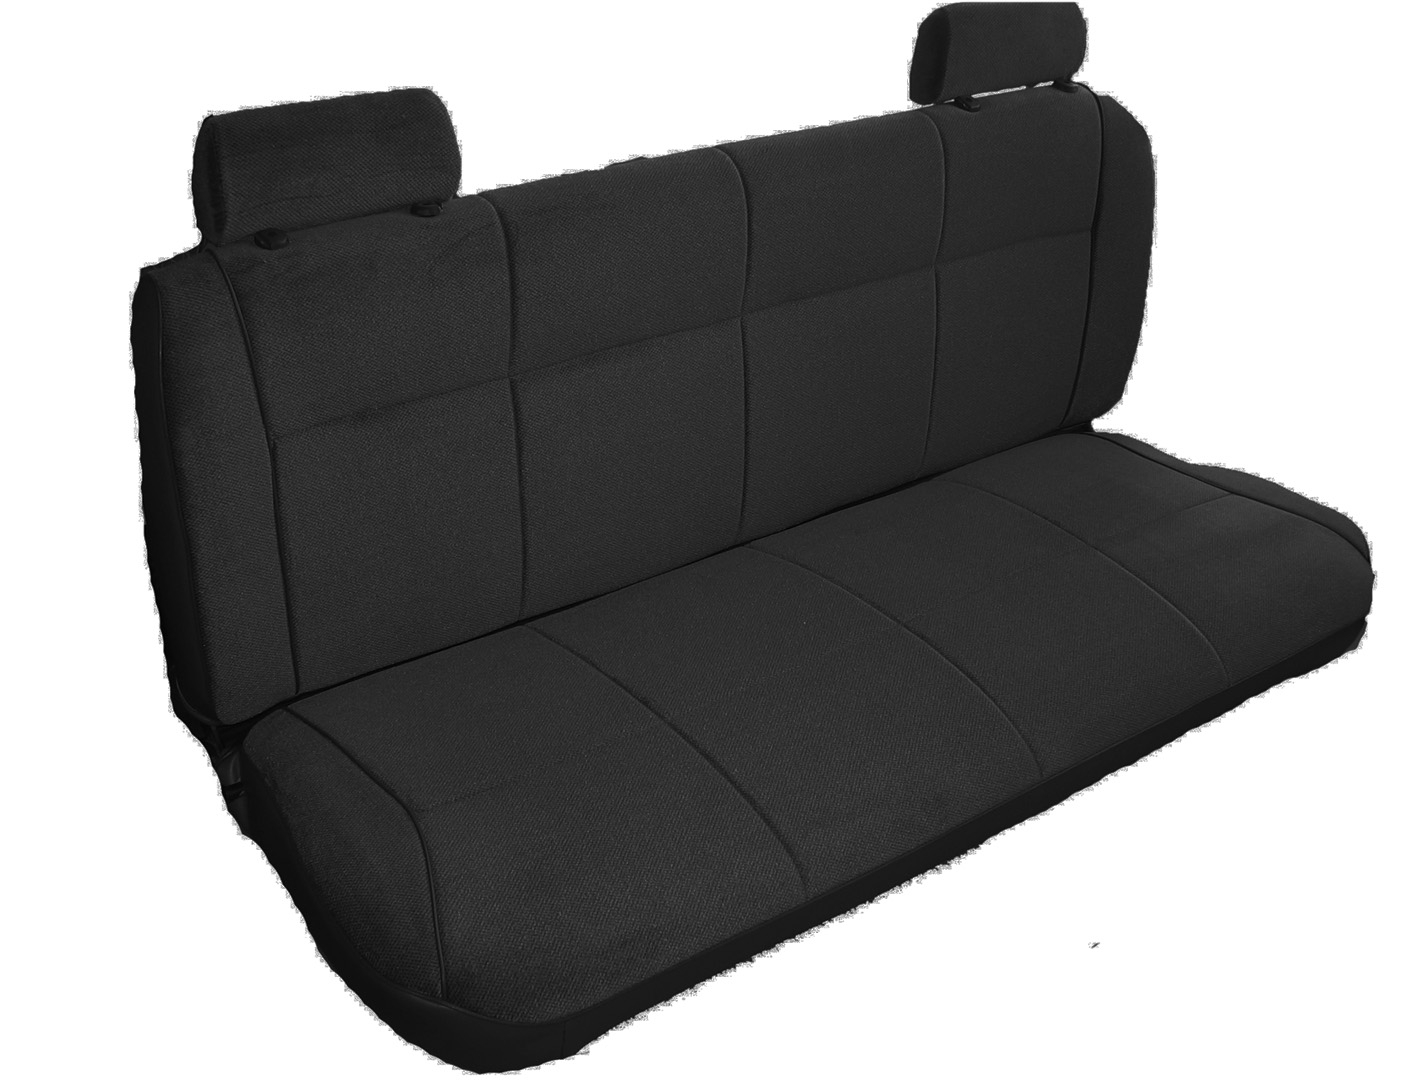 1990 1993 FACTORY REPLACEMENT DODGE TRUCK SEAT COVERS